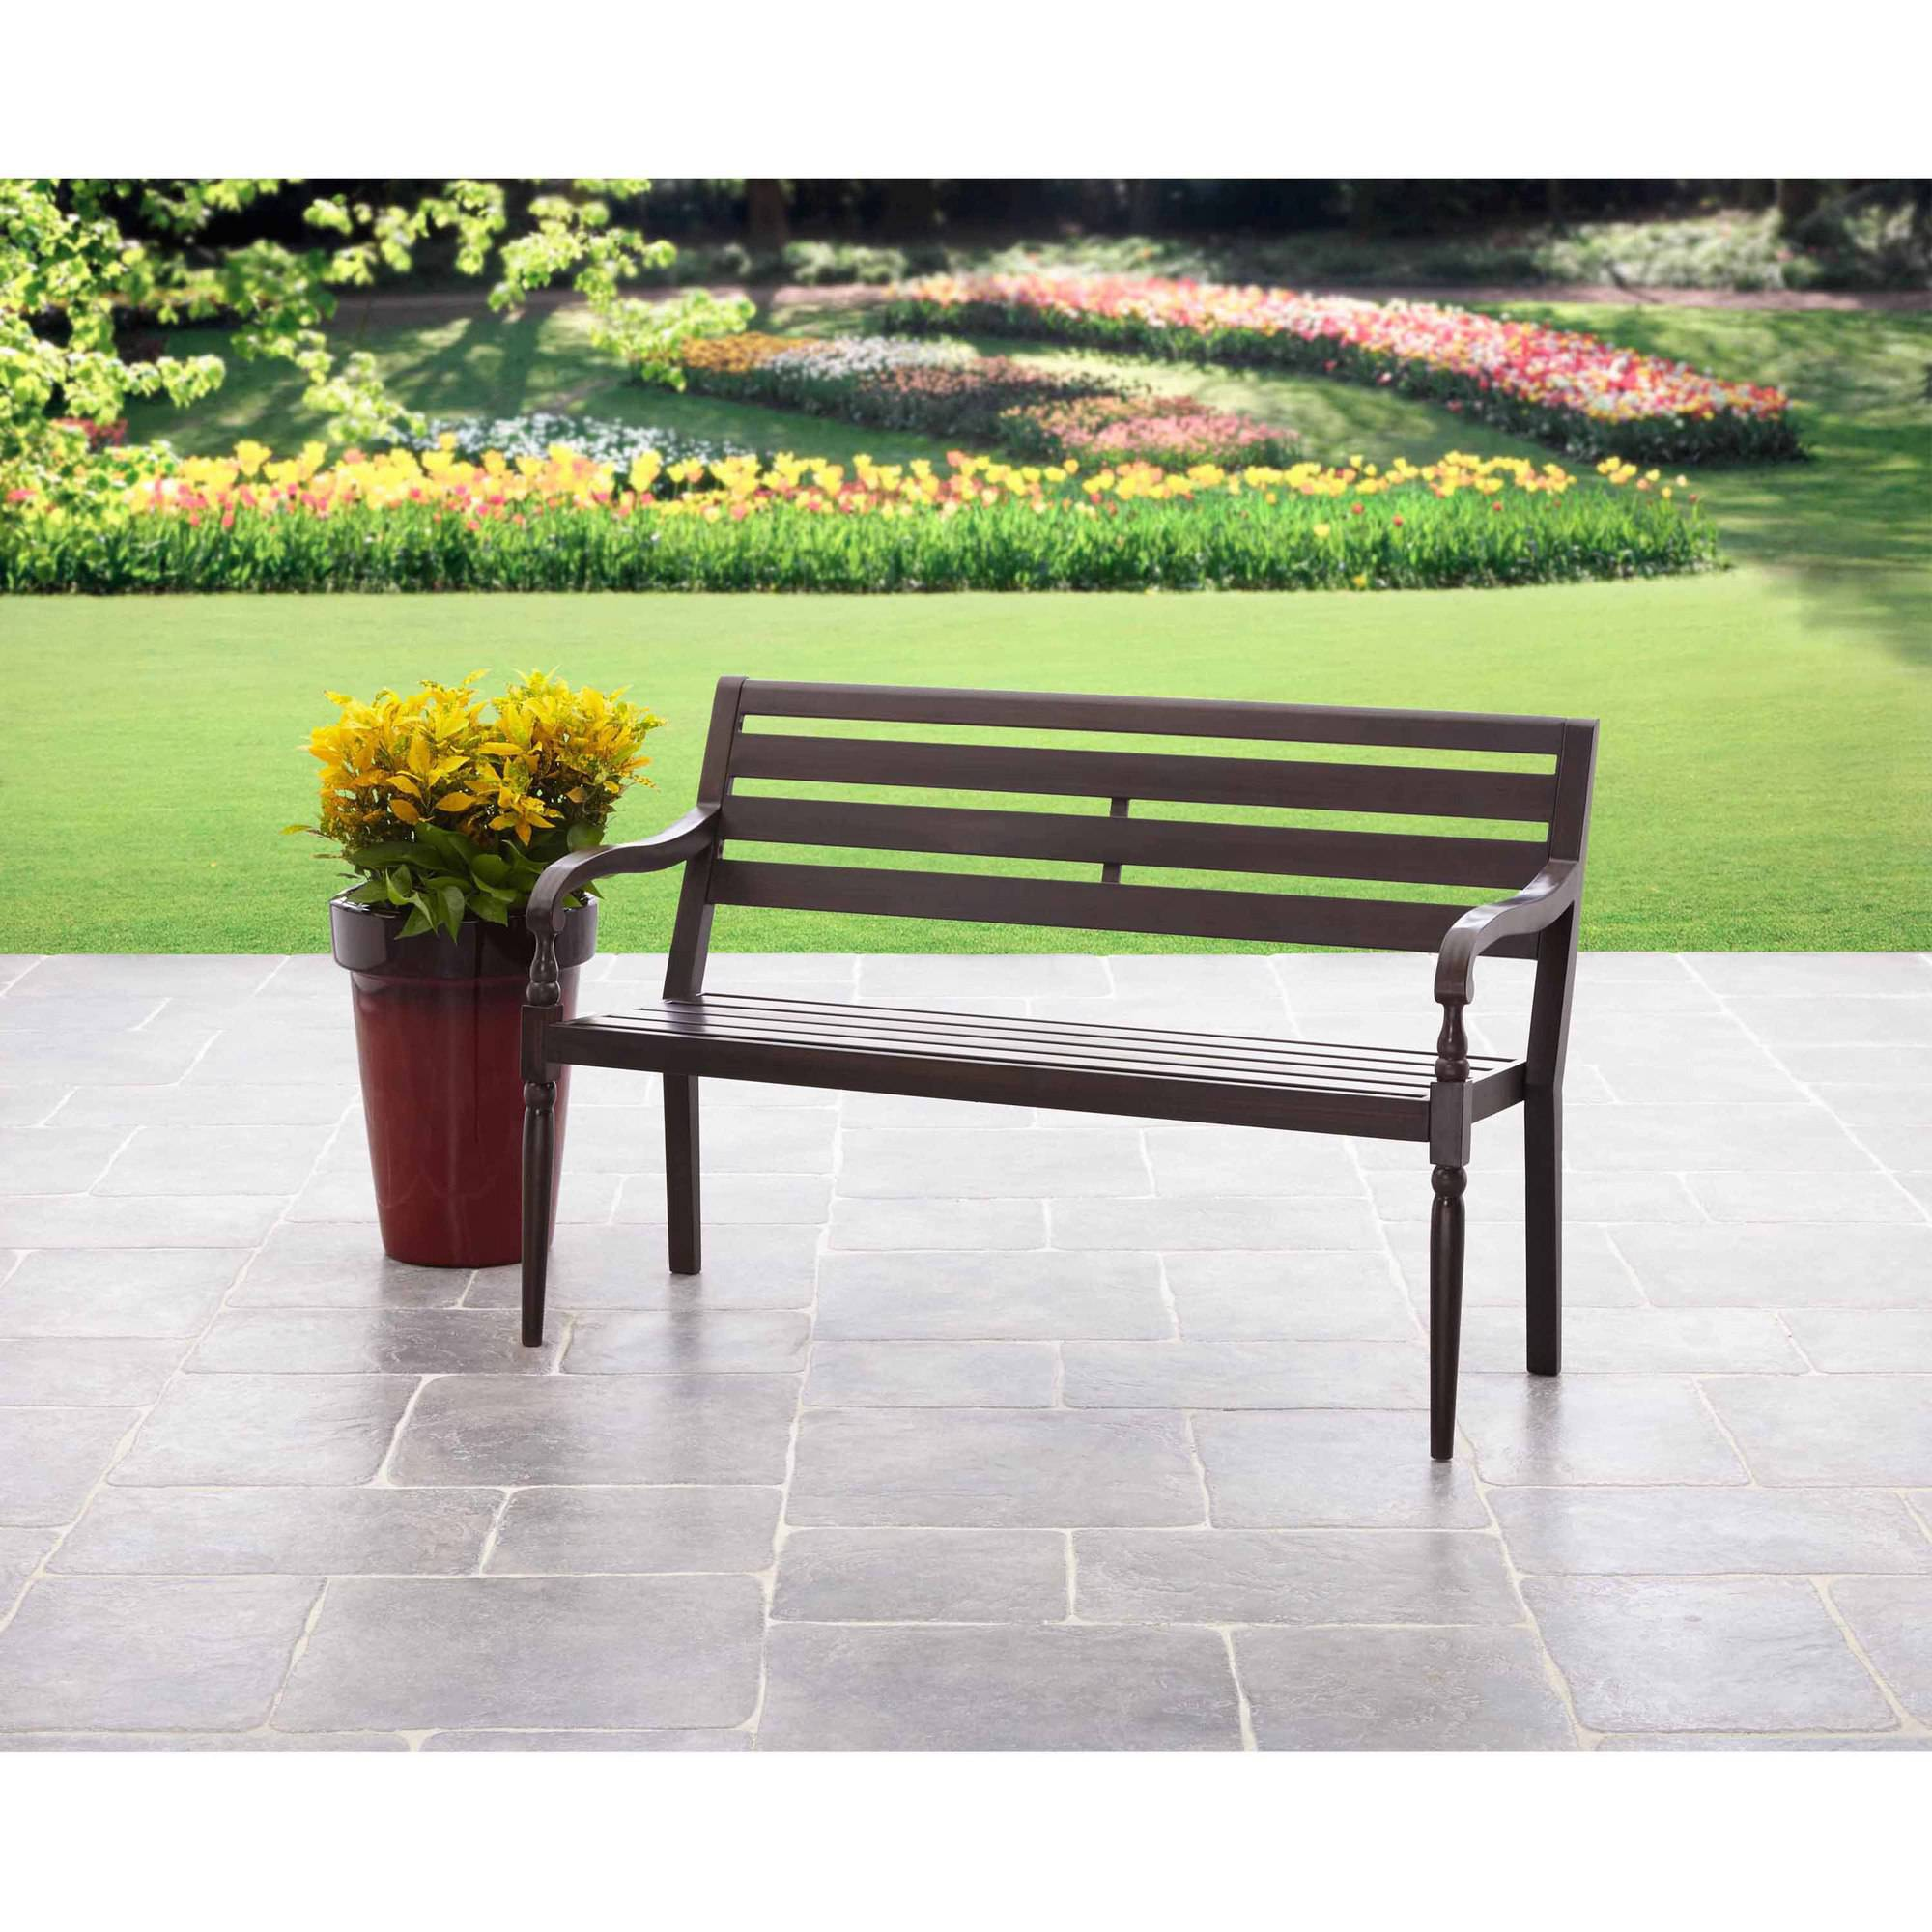 Better Homes and Gardens Gulley Lane Bench